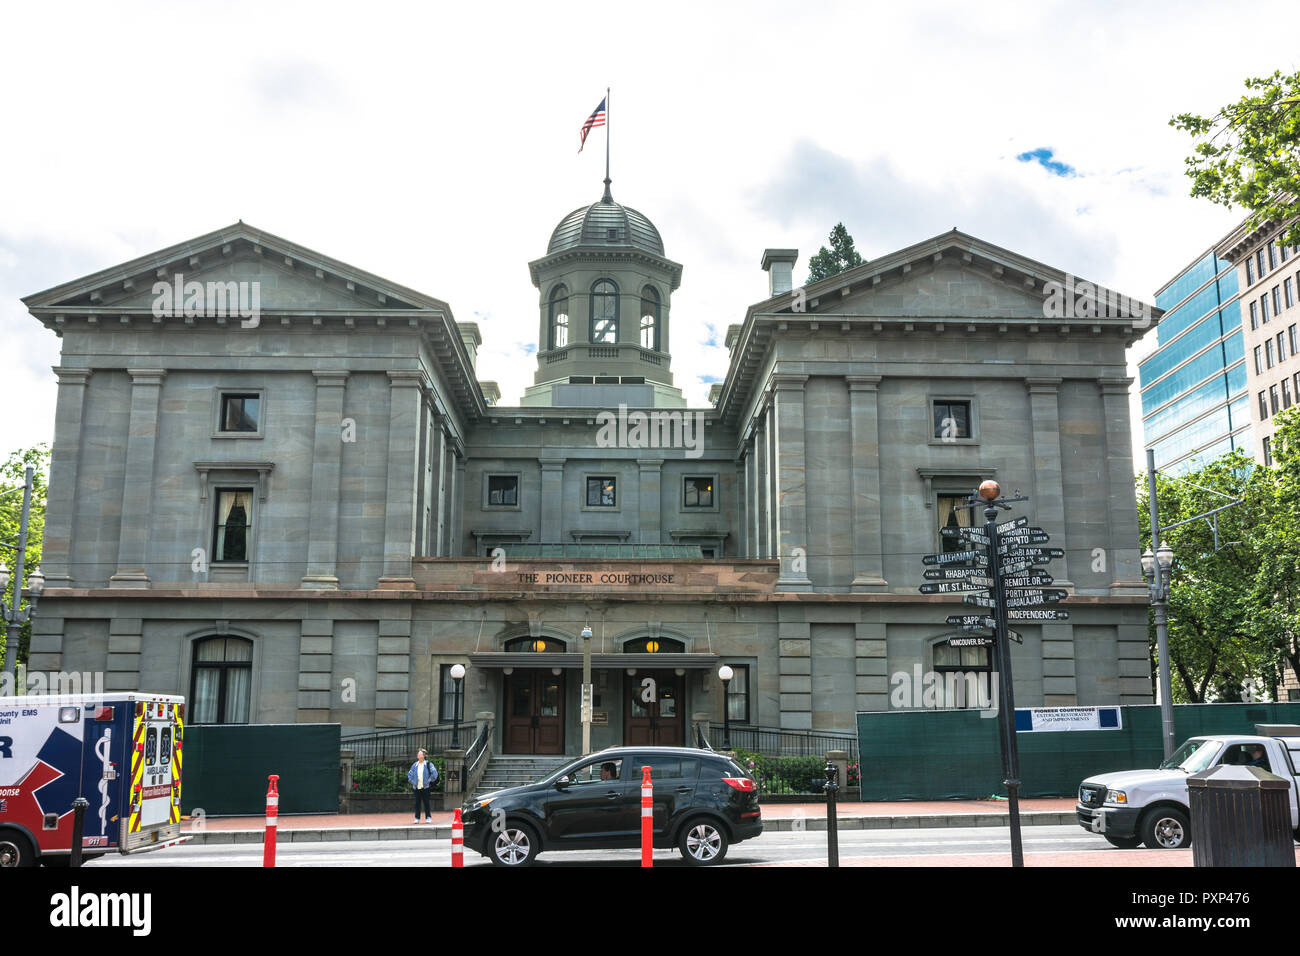 Portland,Oregon,USA - June 9, 2017 : View of the Pioneer Courthouse in Pioneer Courthouse Squaresymbol - Stock Image